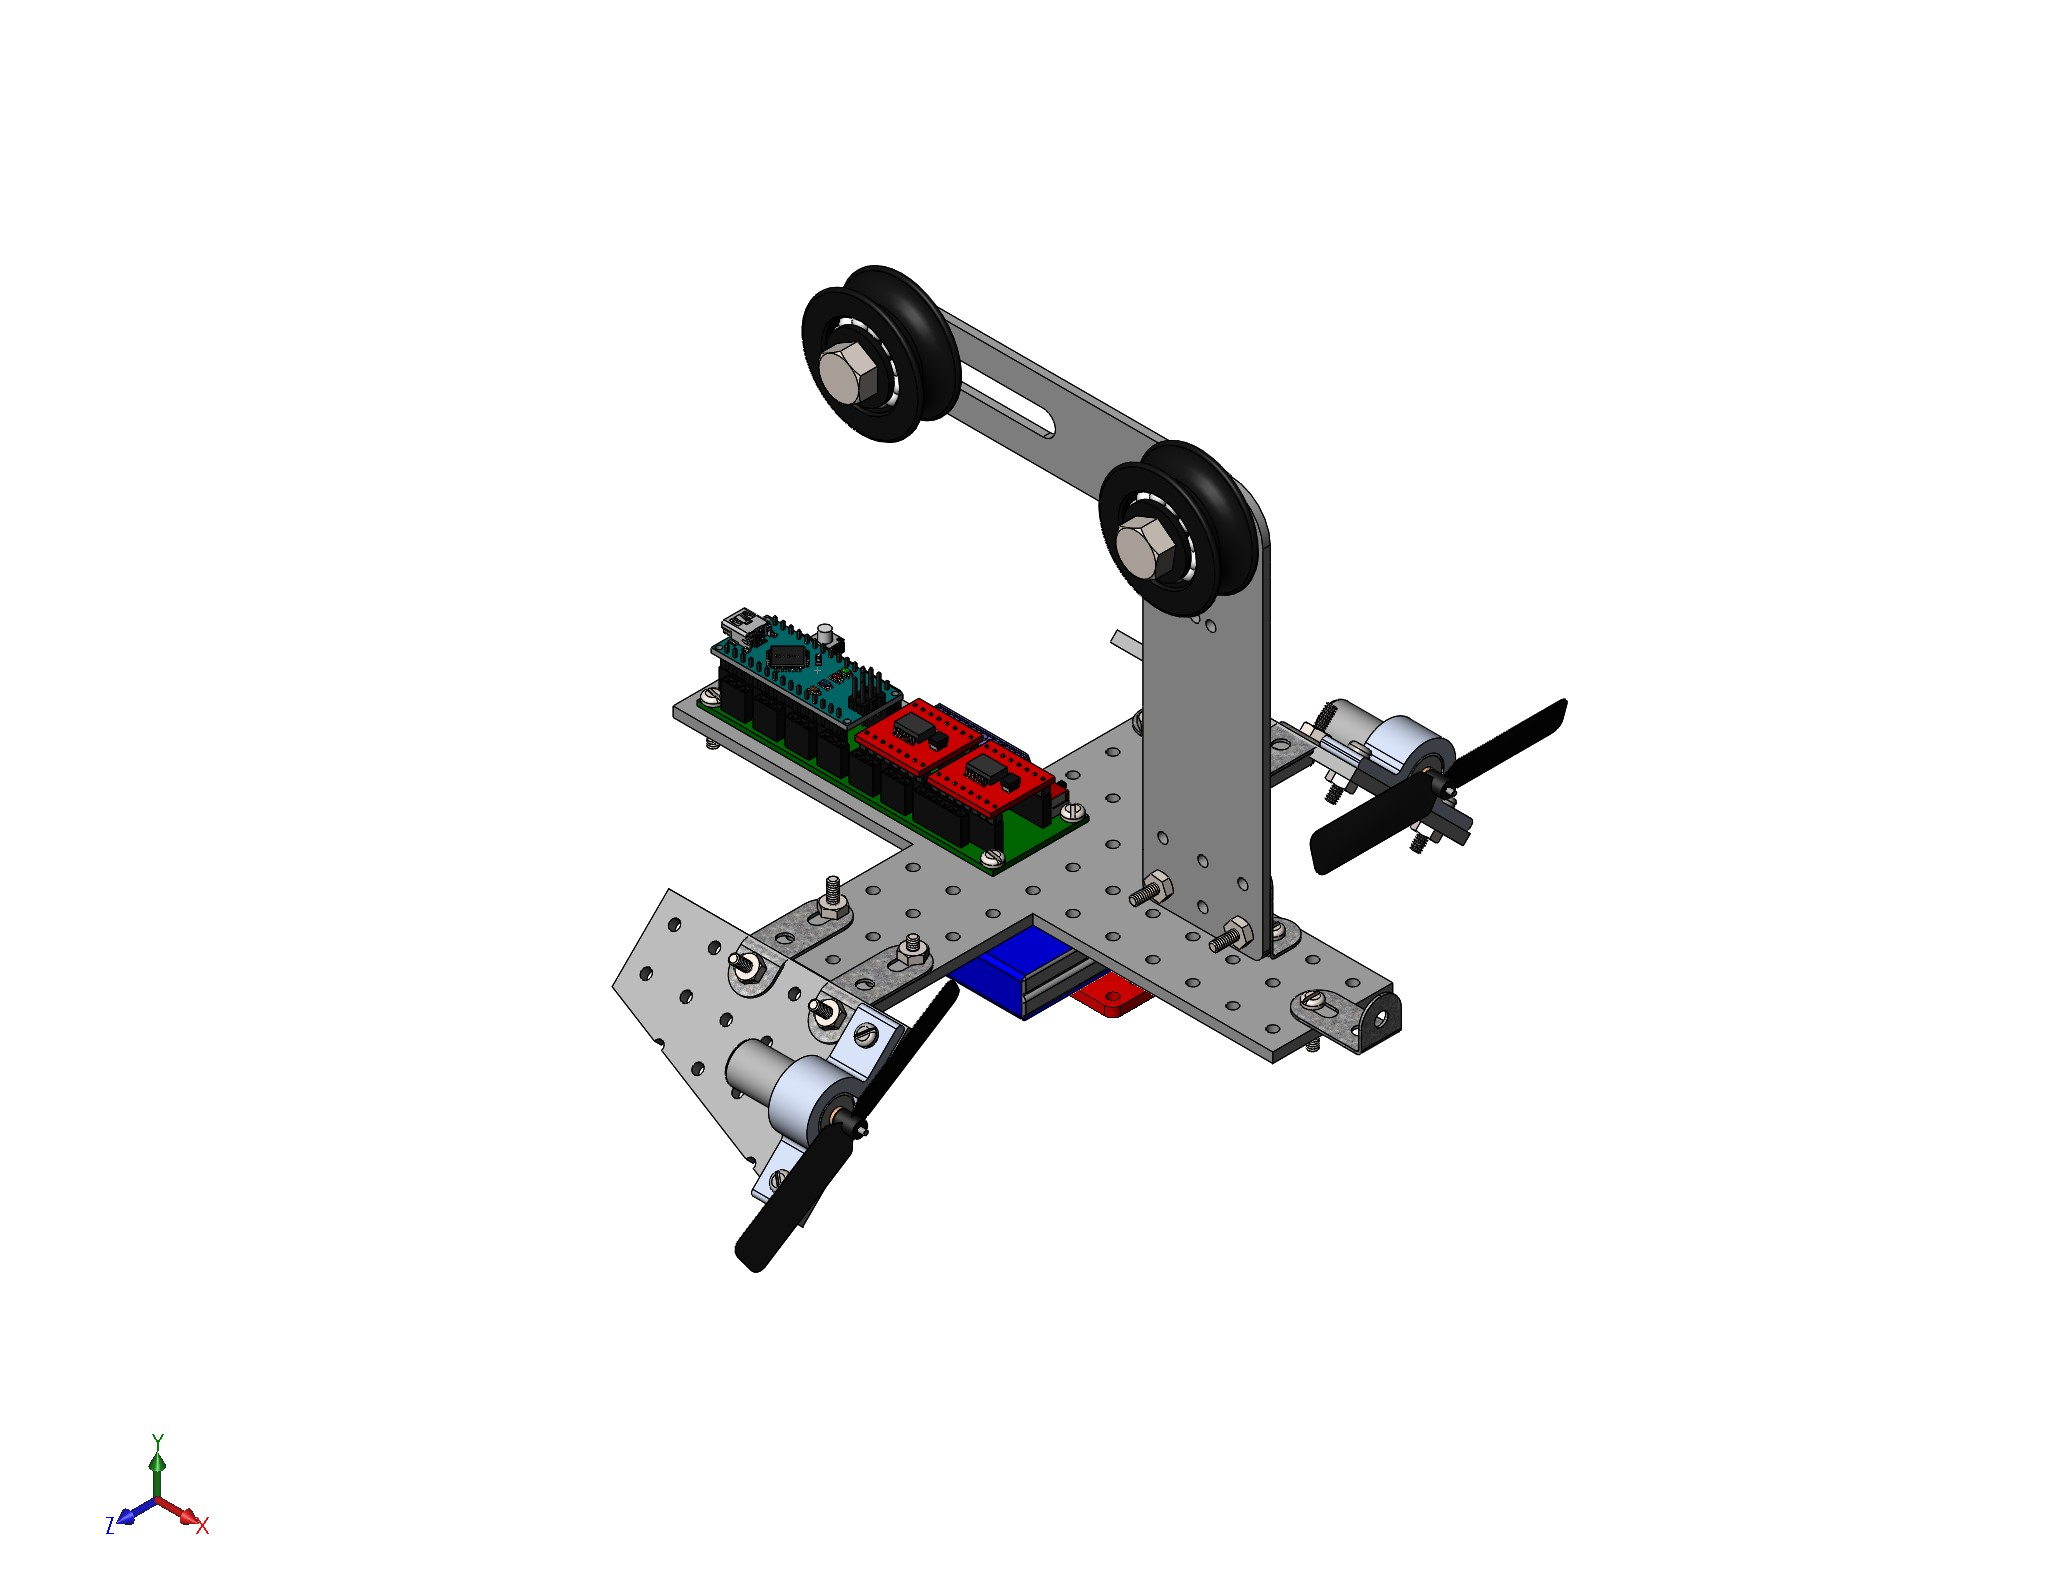 Team E Designs Engr 1182 Spring 2018 Pc Scott Worldwide Assembling The Arduino Battery Tester Circuit Assembly Above Is A Fully Defined Solidworks Of Aev Including Propellors Pack And Screws